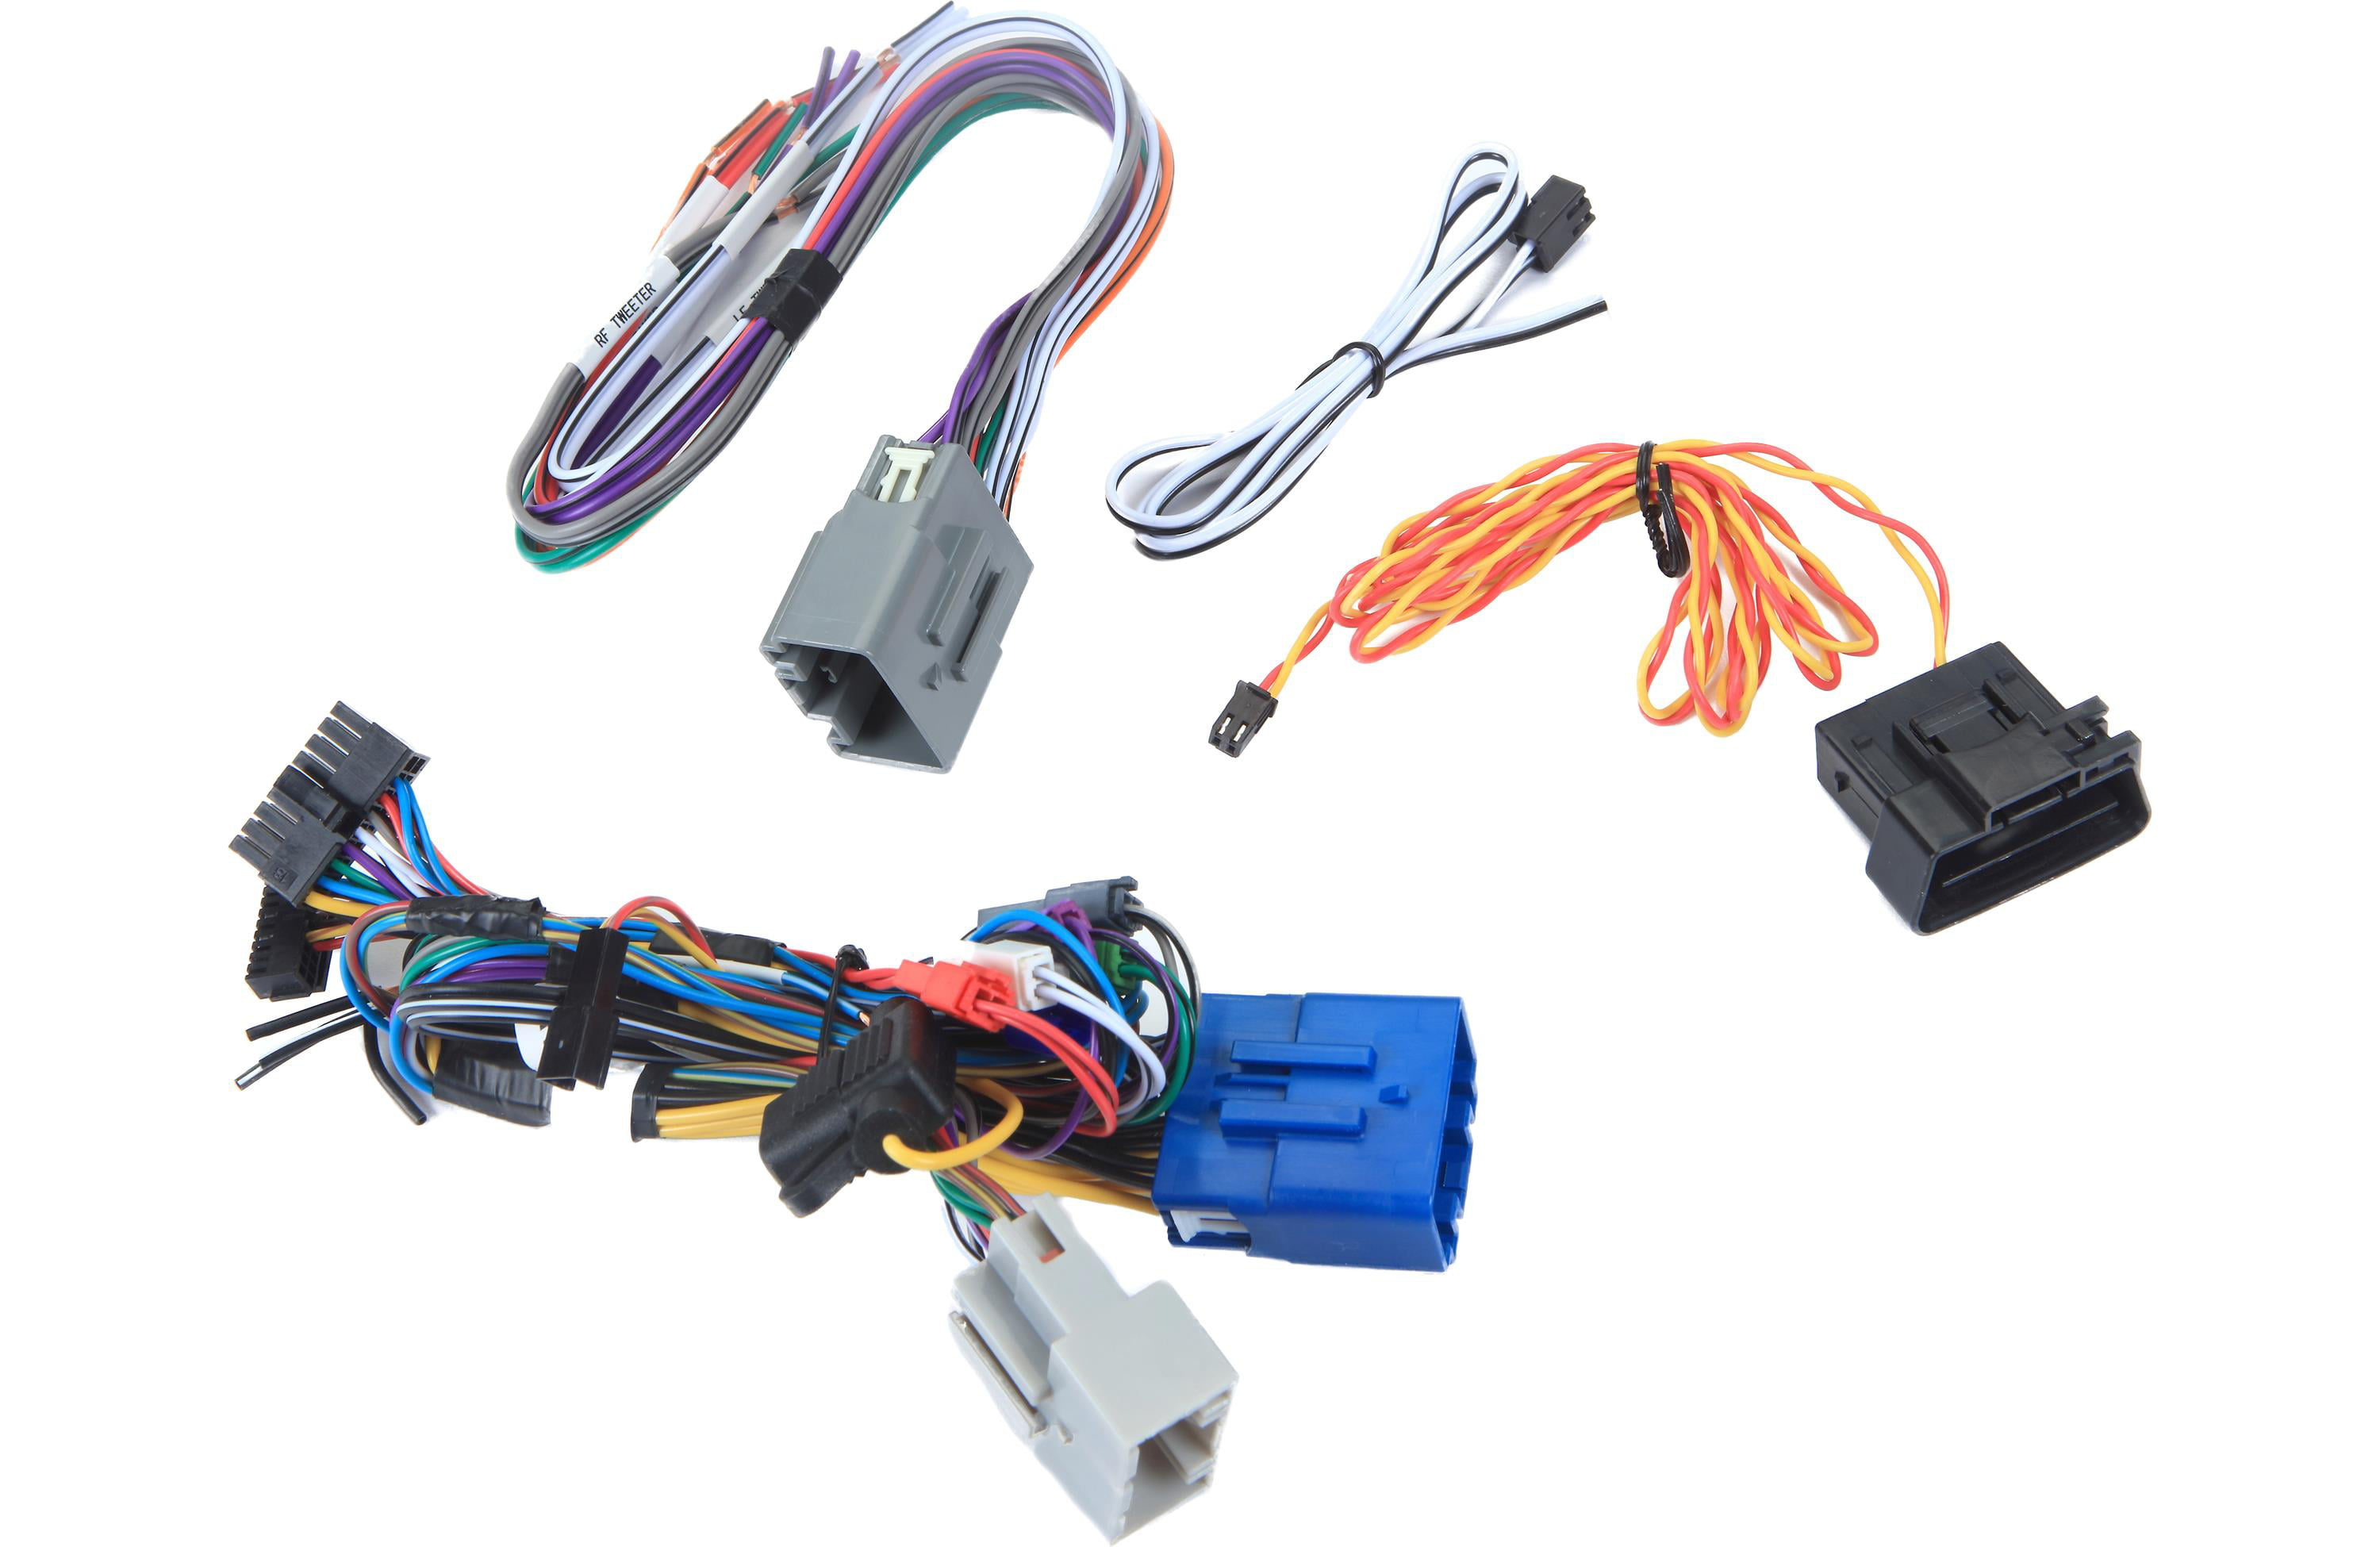 Ads Idatalink Maestro Hrn Ar Fo2 Select Ford T Harness For Mar Edge Sony Wiring Hrnarfo2